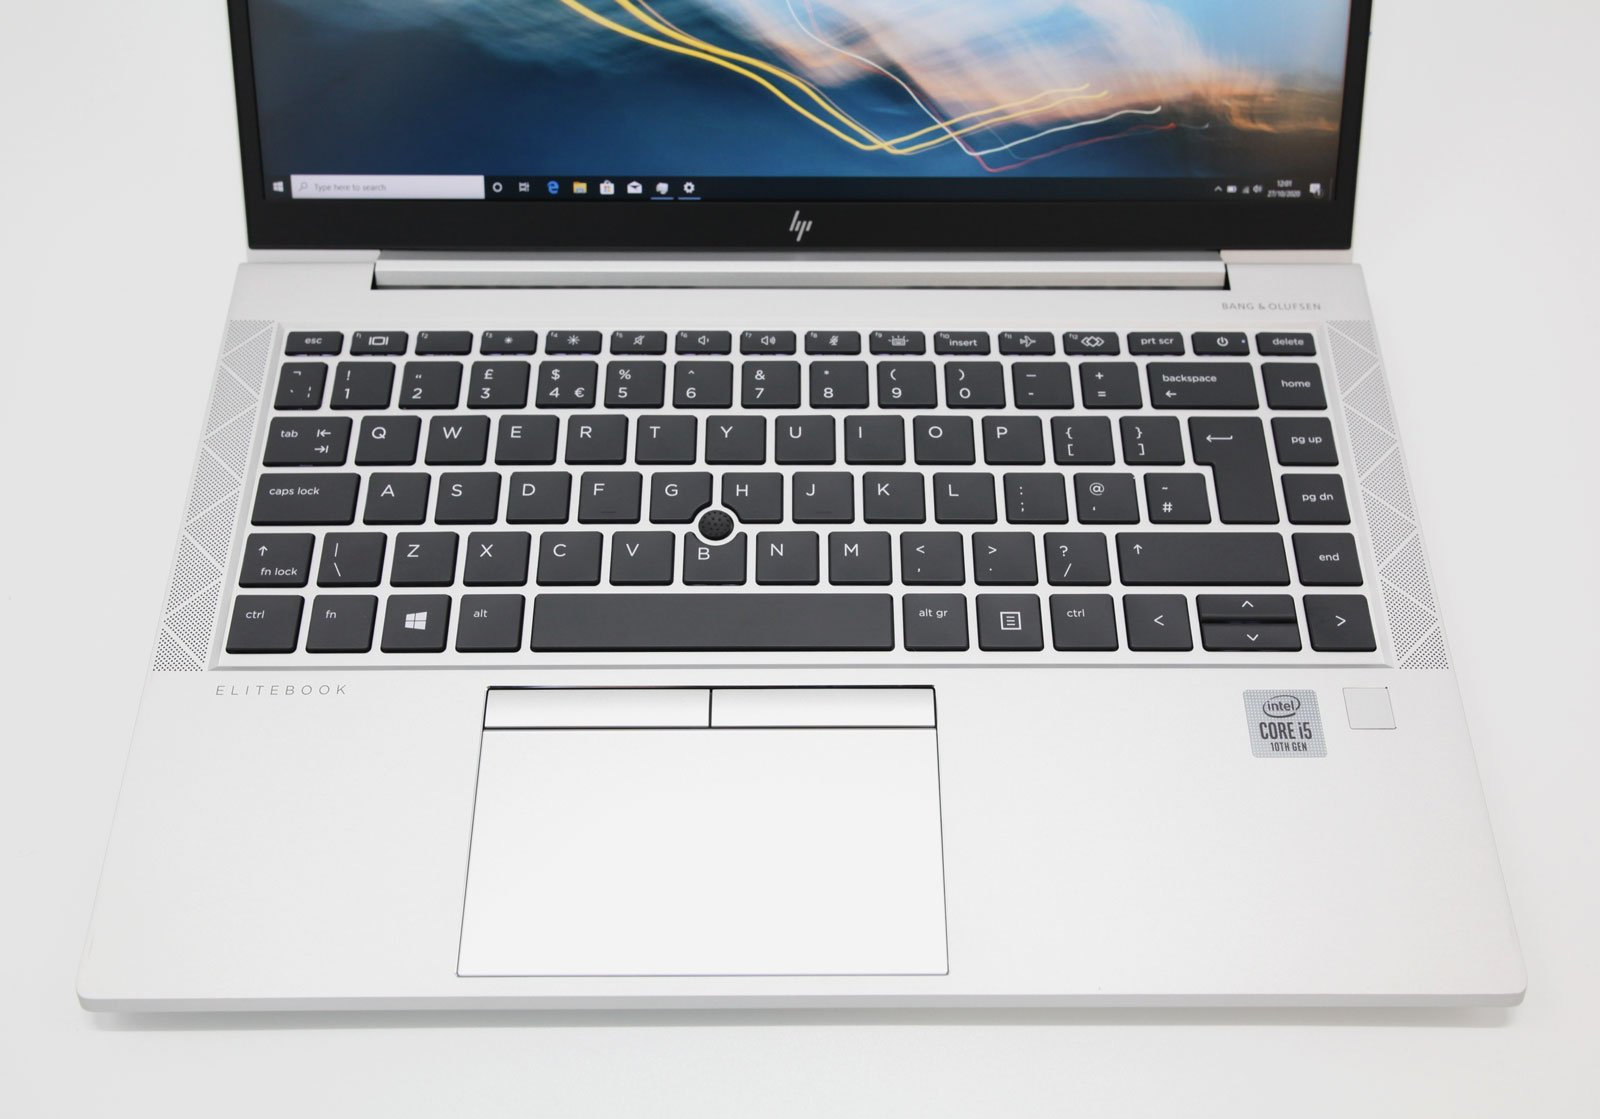 HP EliteBook 840 G7 Laptop: 32GB RAM, 512GB SSD, Core i5 10th Gen, 14